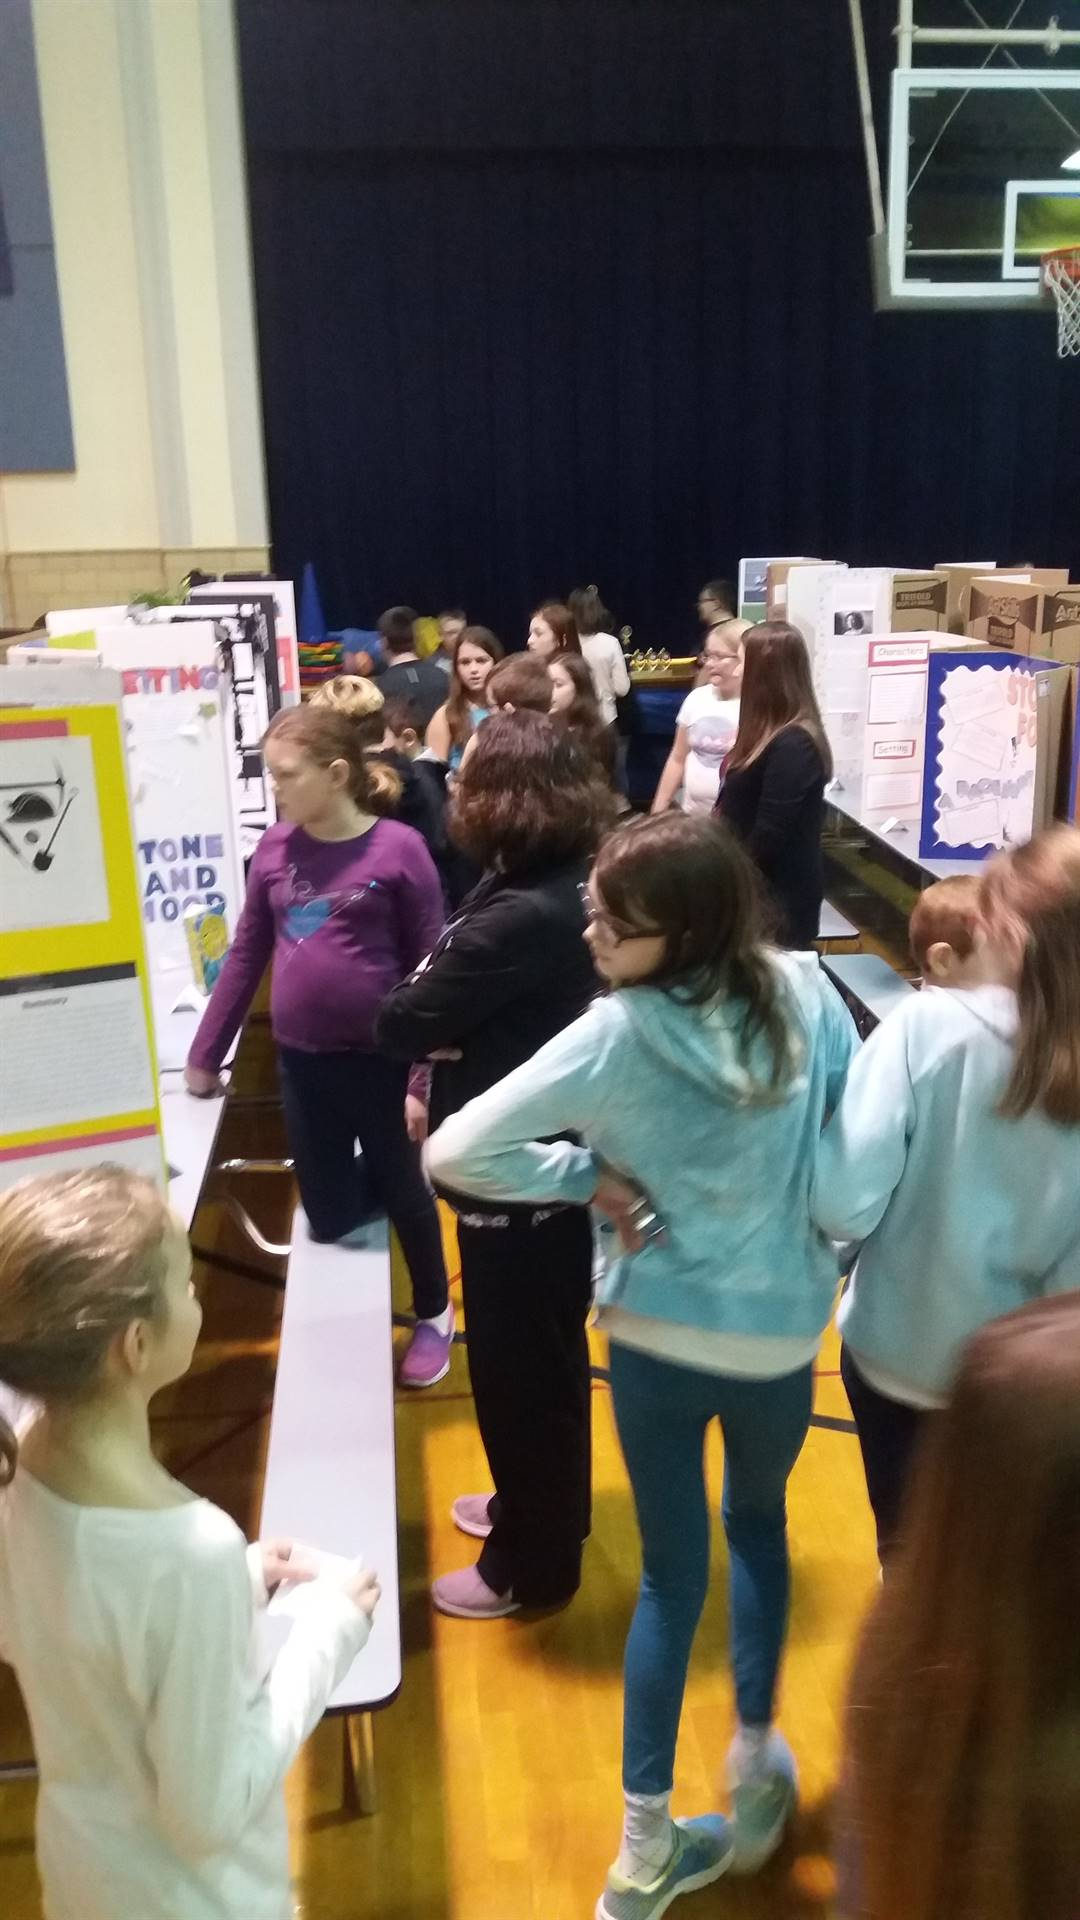 Students looking at reading fair posters in the gym.